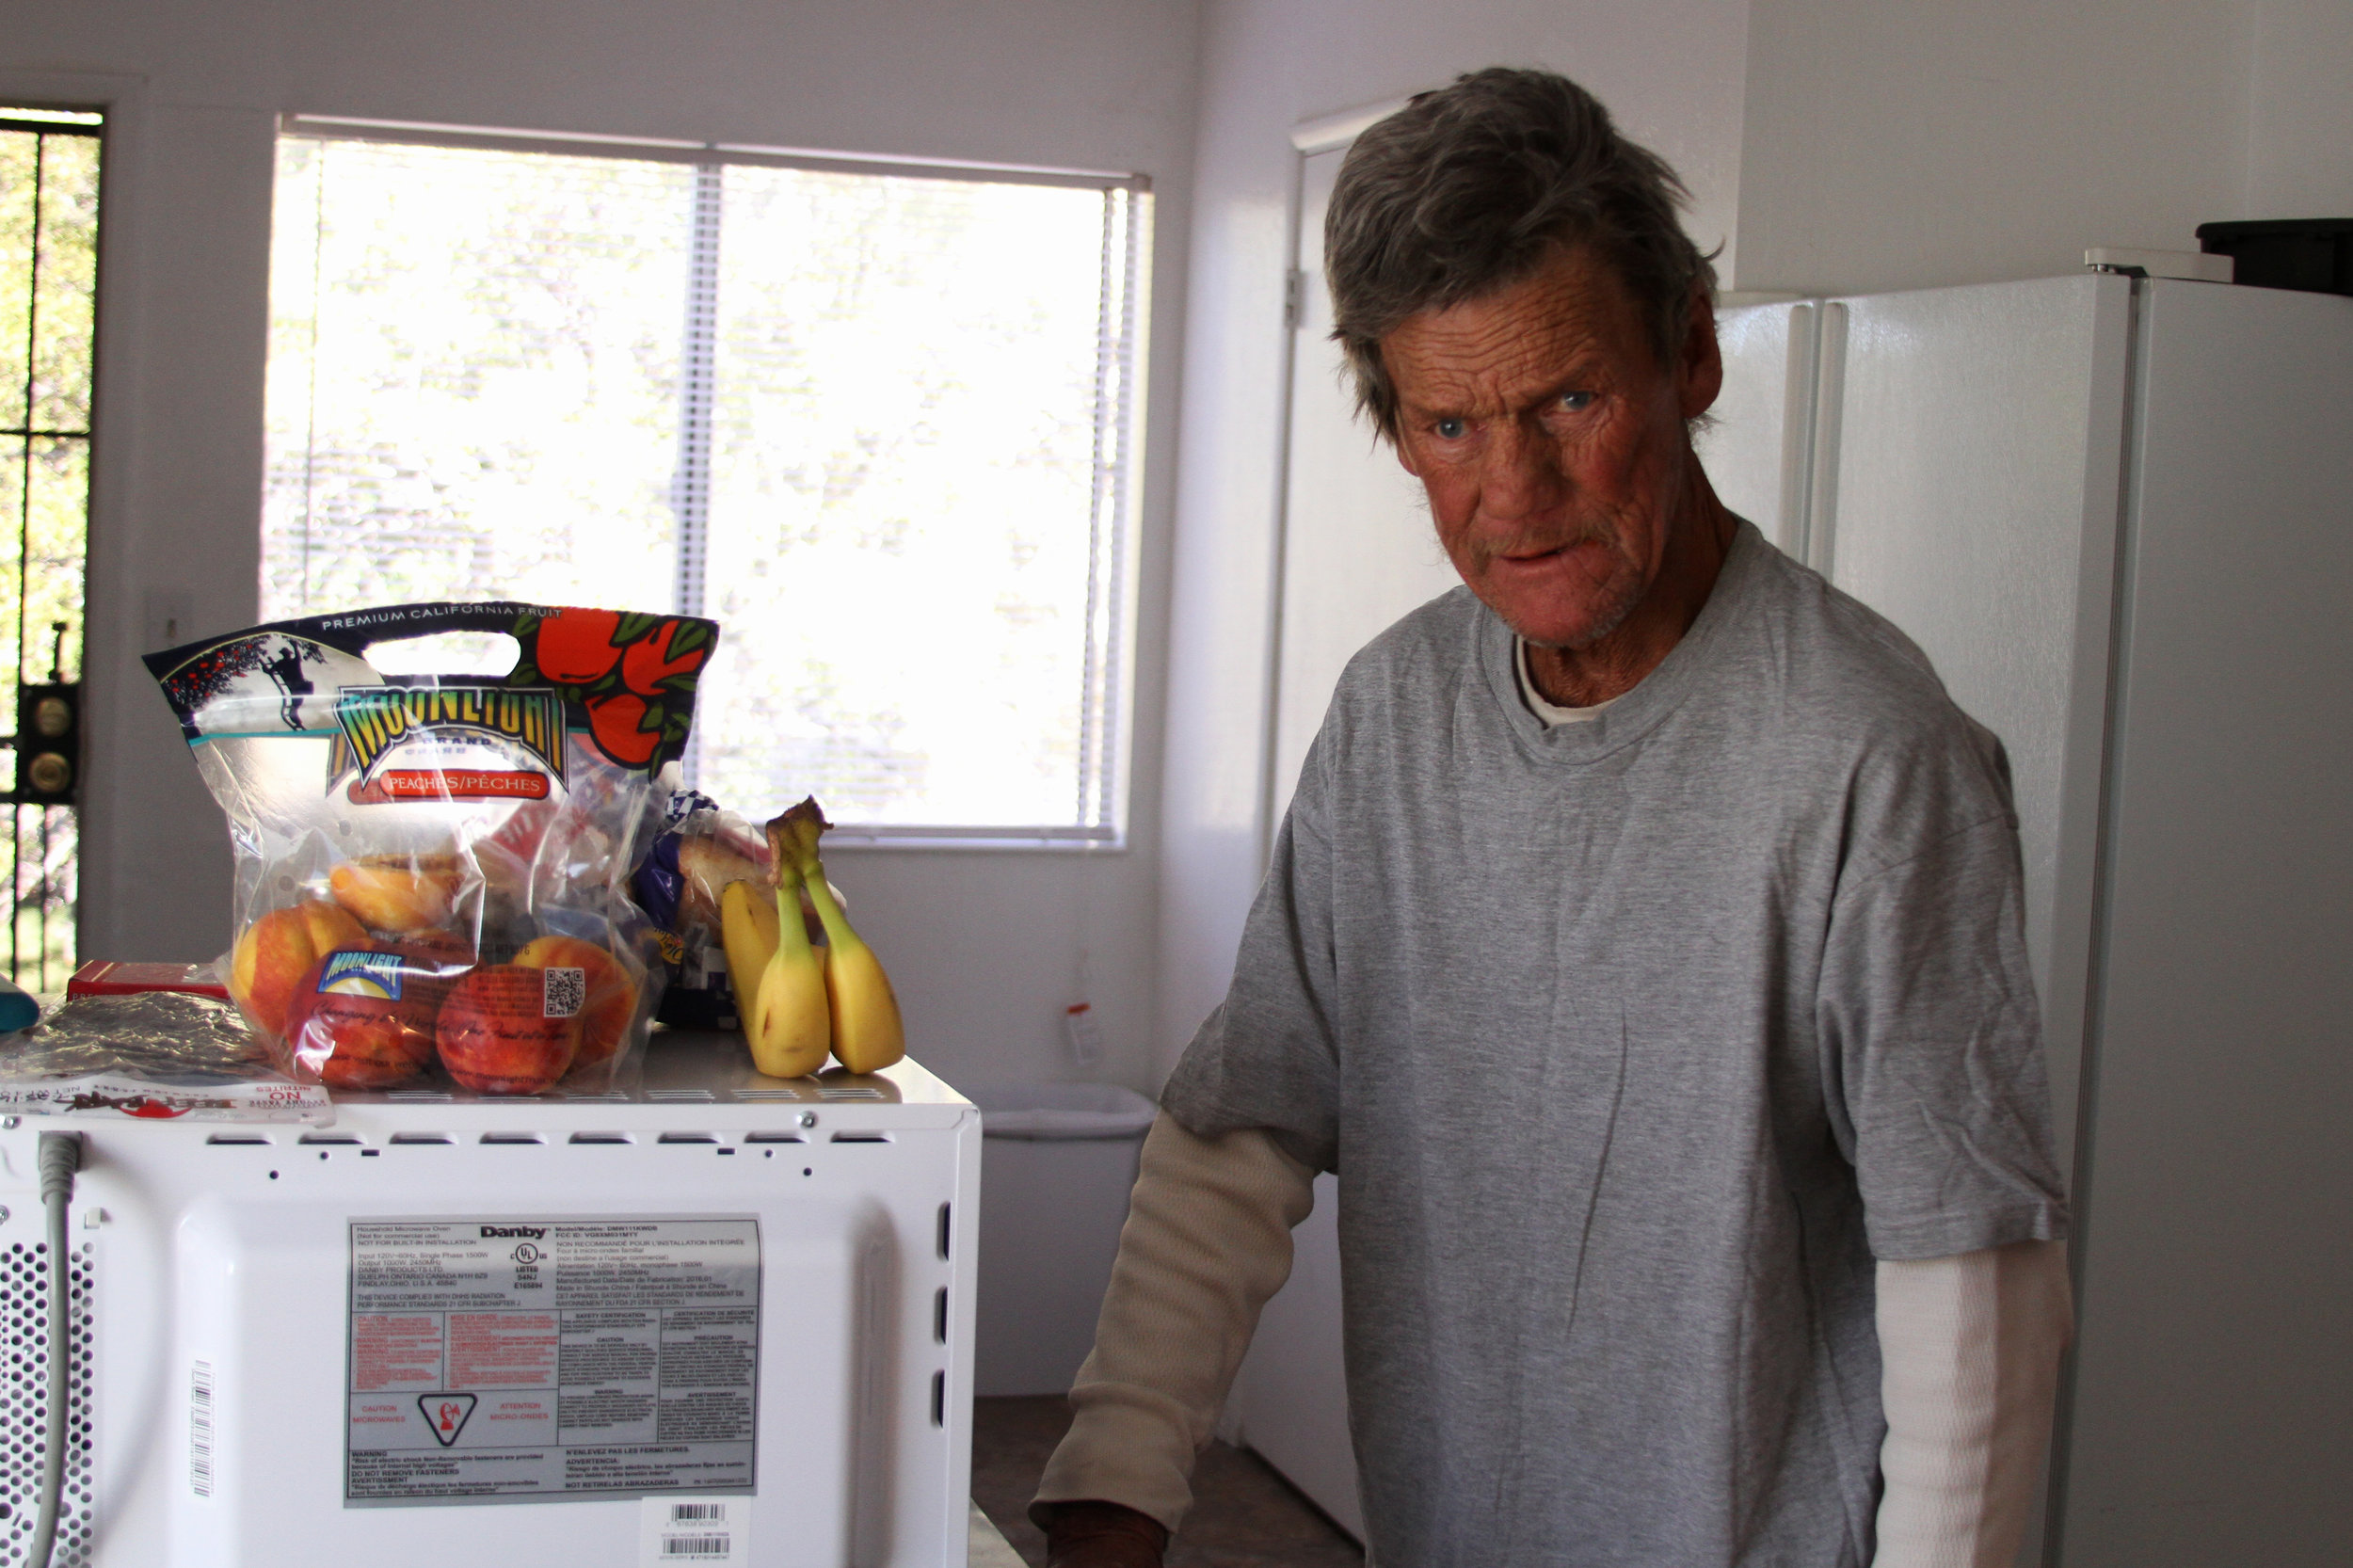 Doug gets to use a shared kitchen with housemates in downtown Reno, after being homeless on a porch.